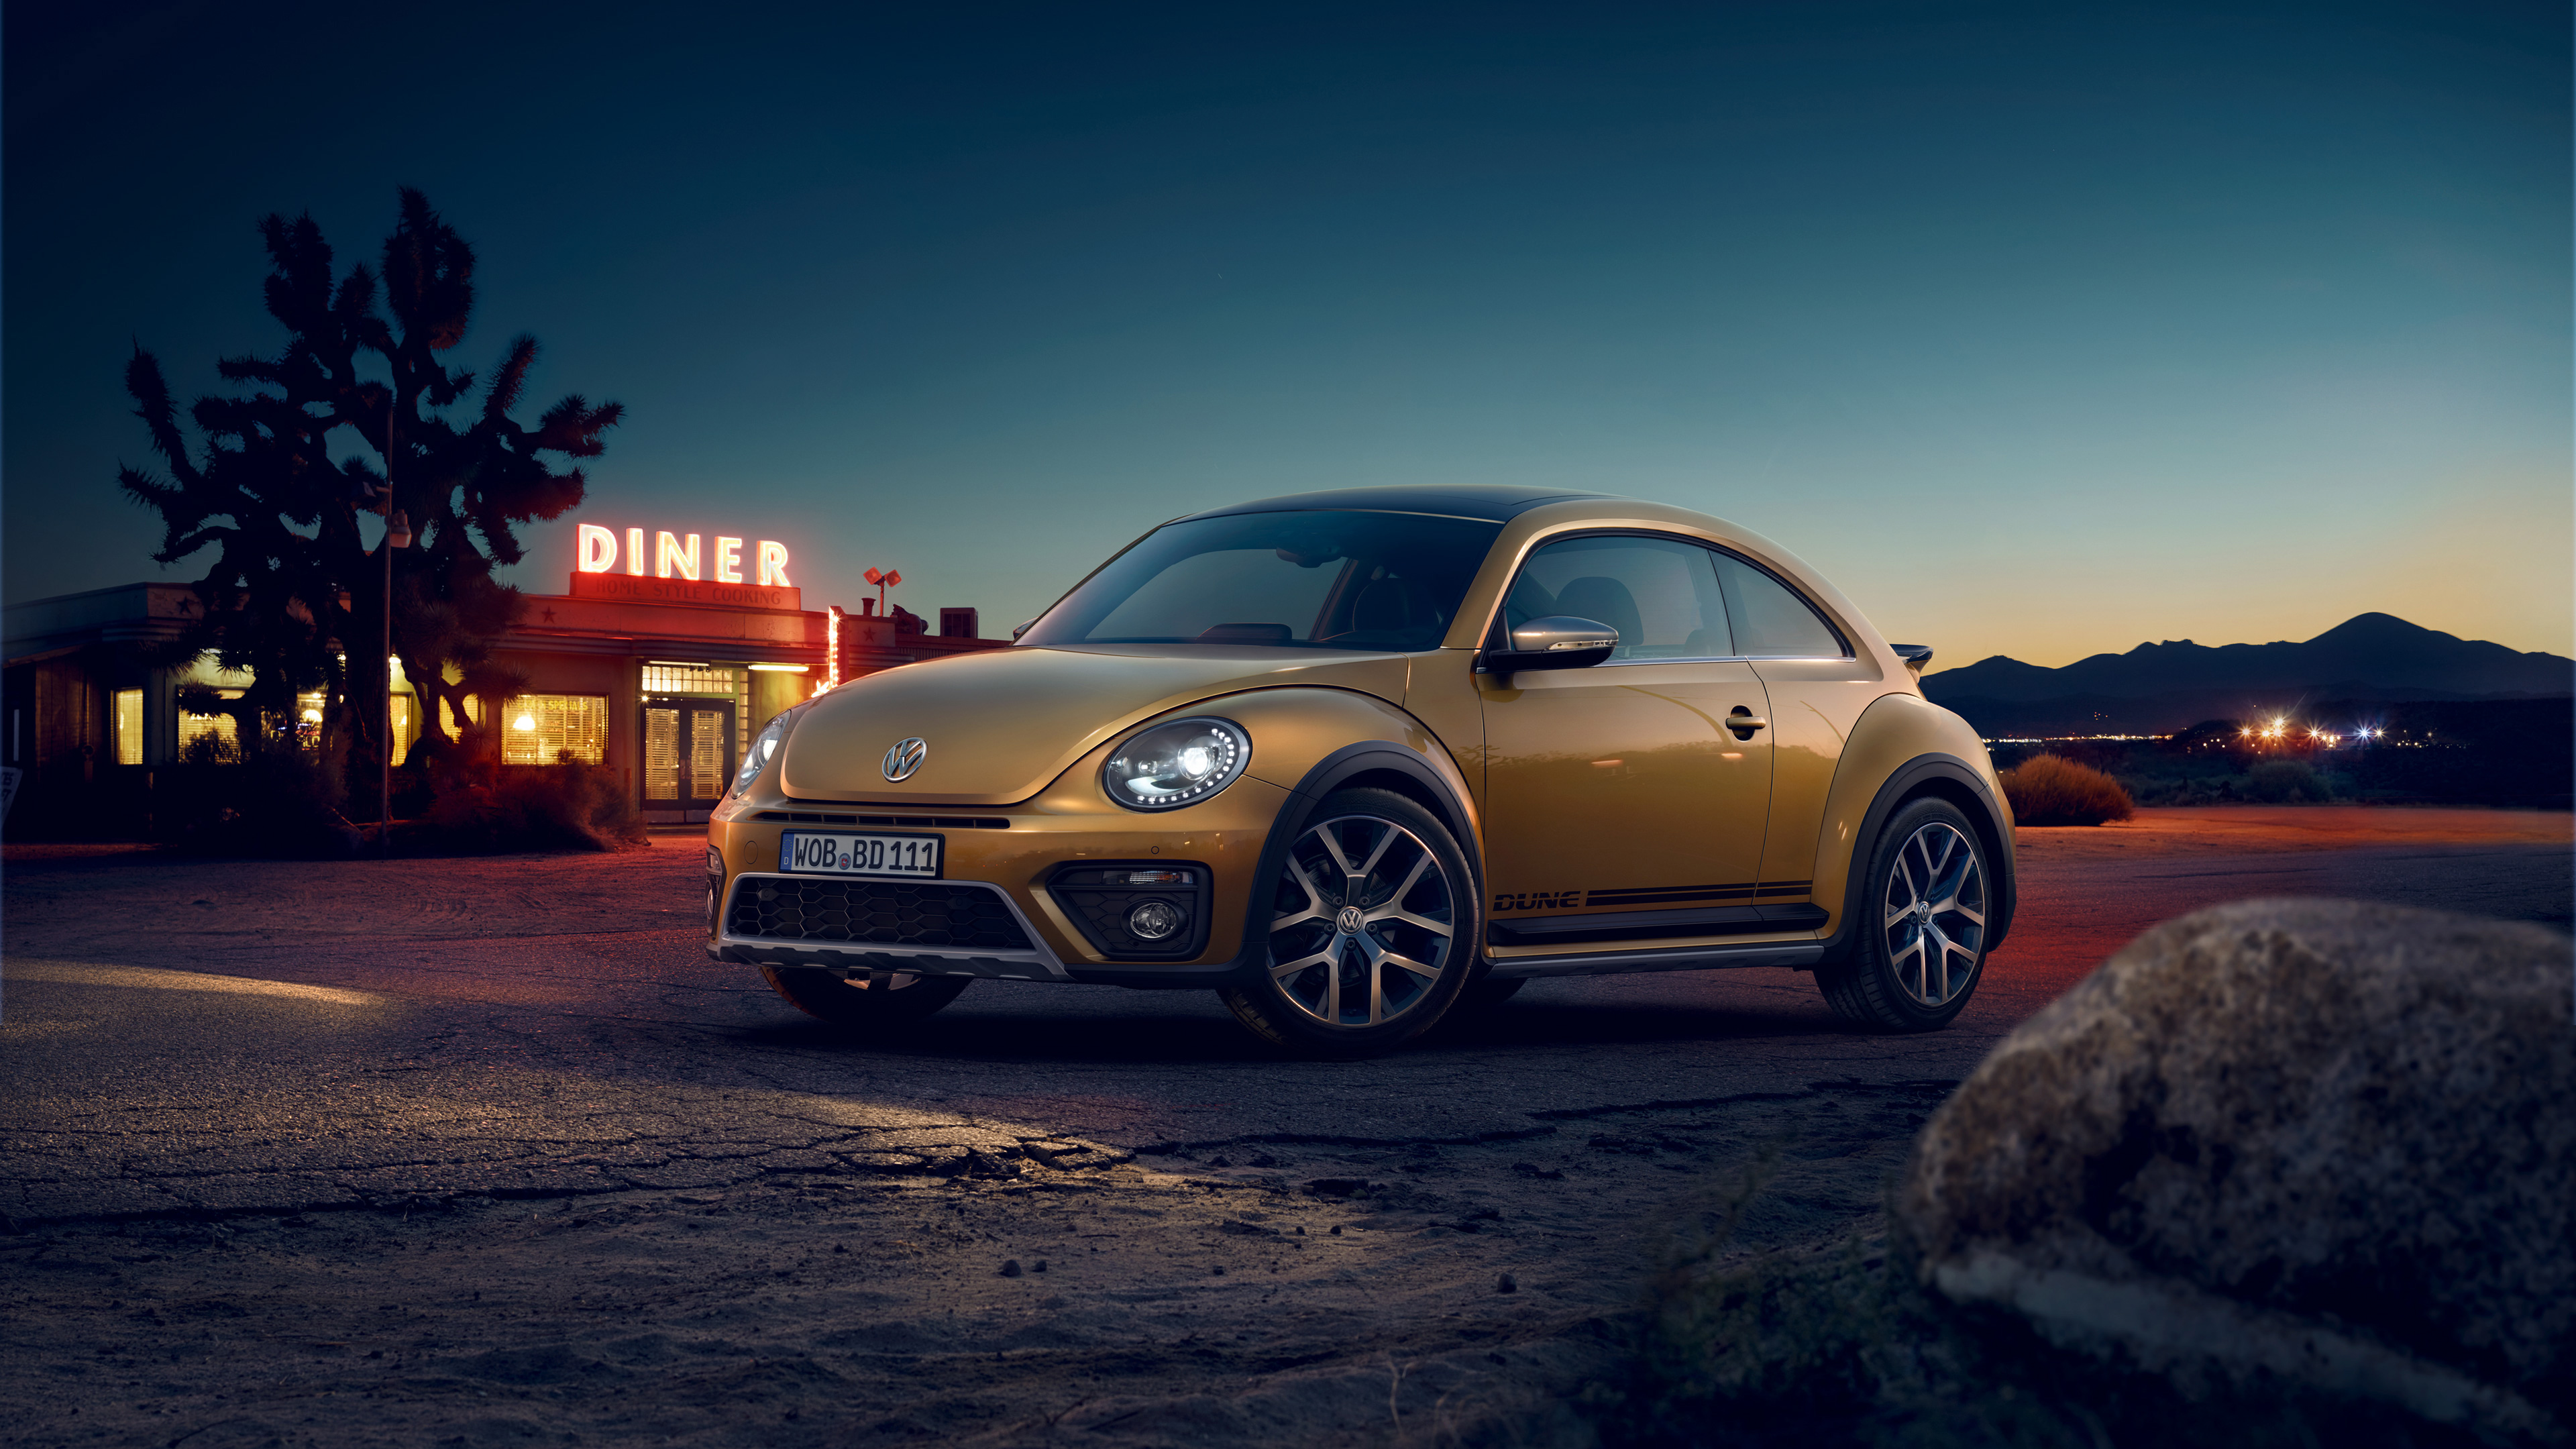 Volkswagen Beetle Dune 4K Wallpaper | HD Car Wallpapers ...